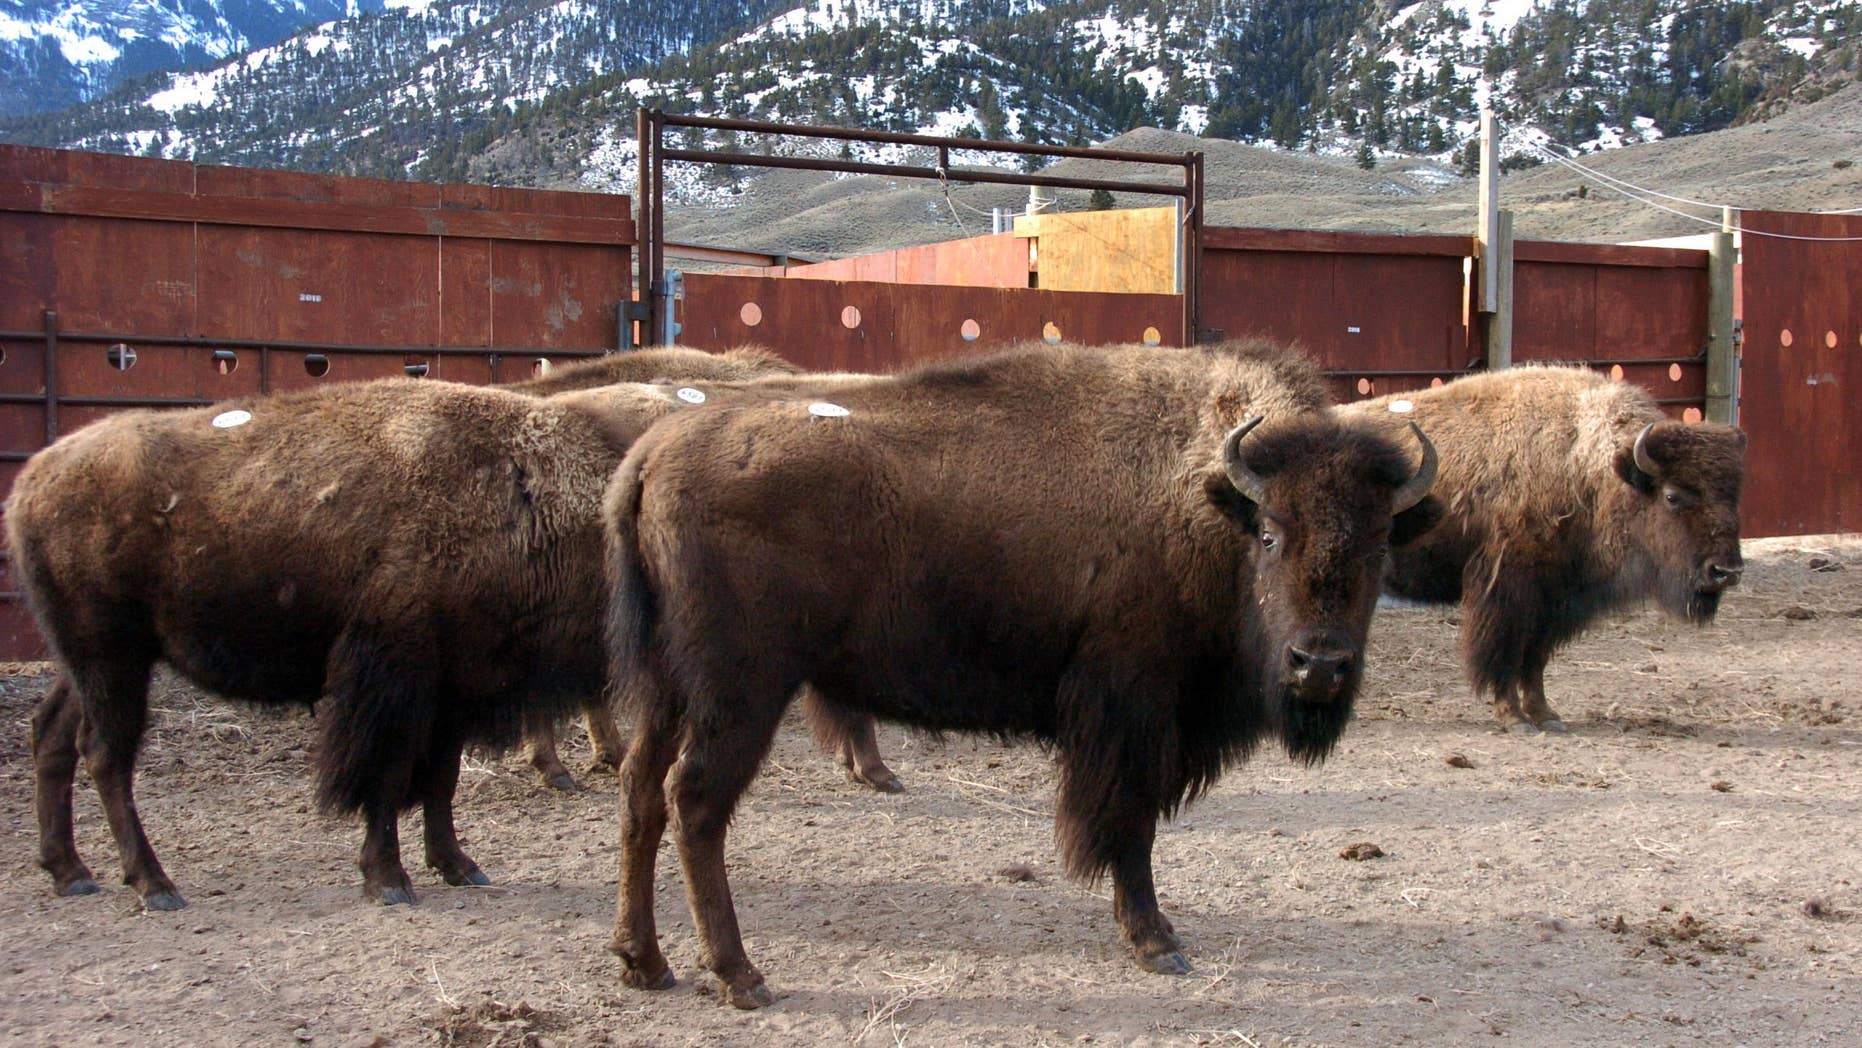 A group of Yellowstone National Park bison await shipment to slaughter inside a holding pen along the park.